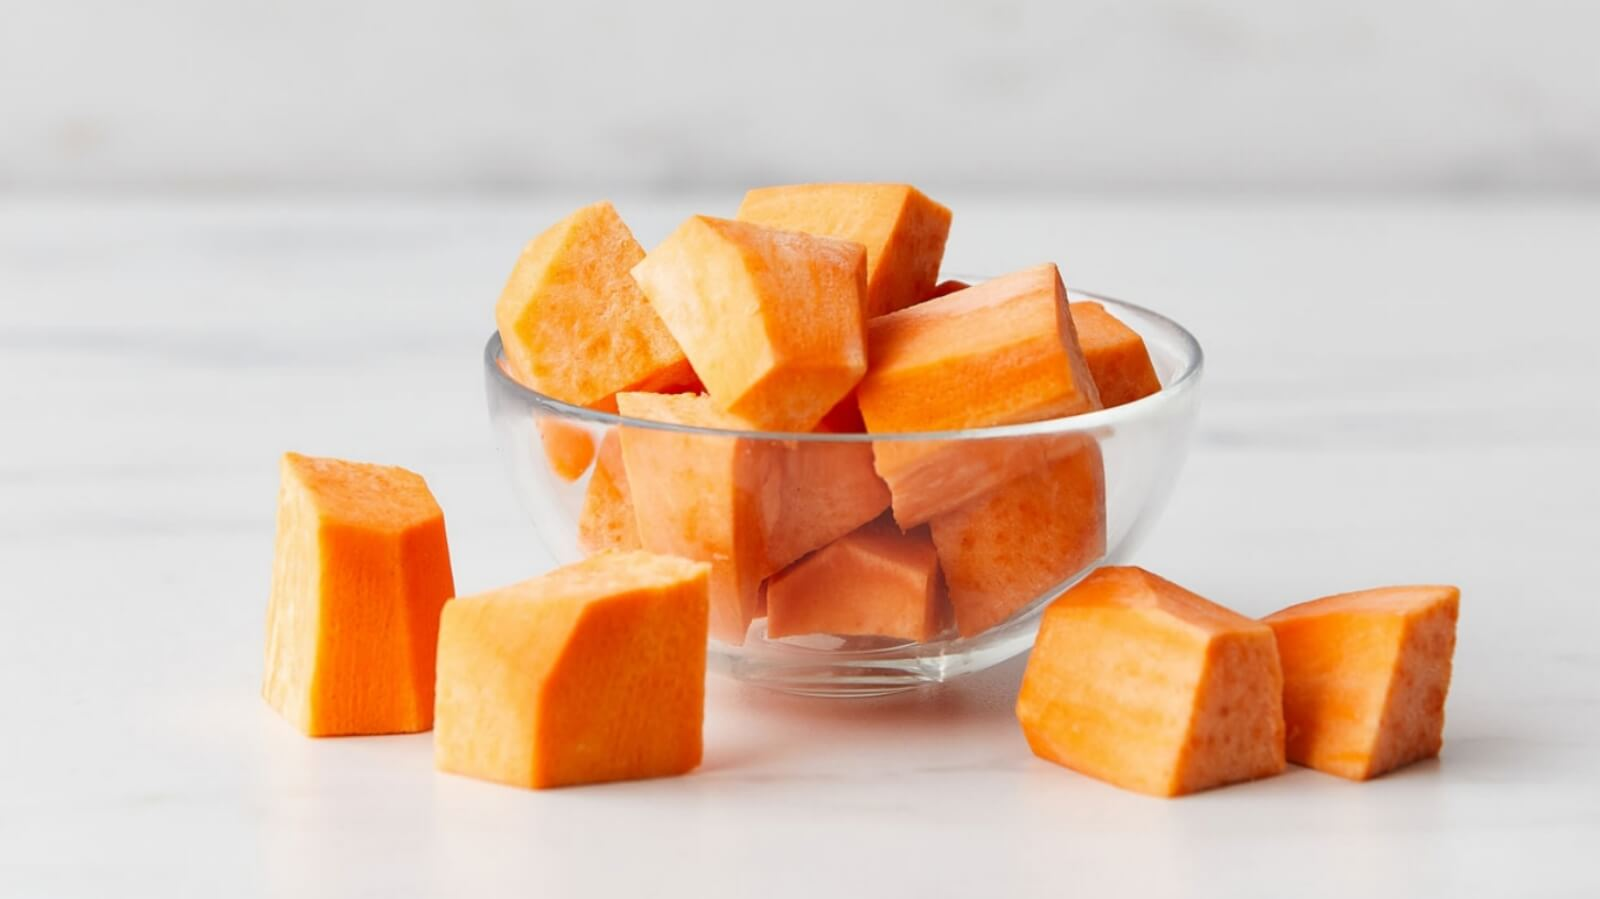 cubed-sweet-potatoes